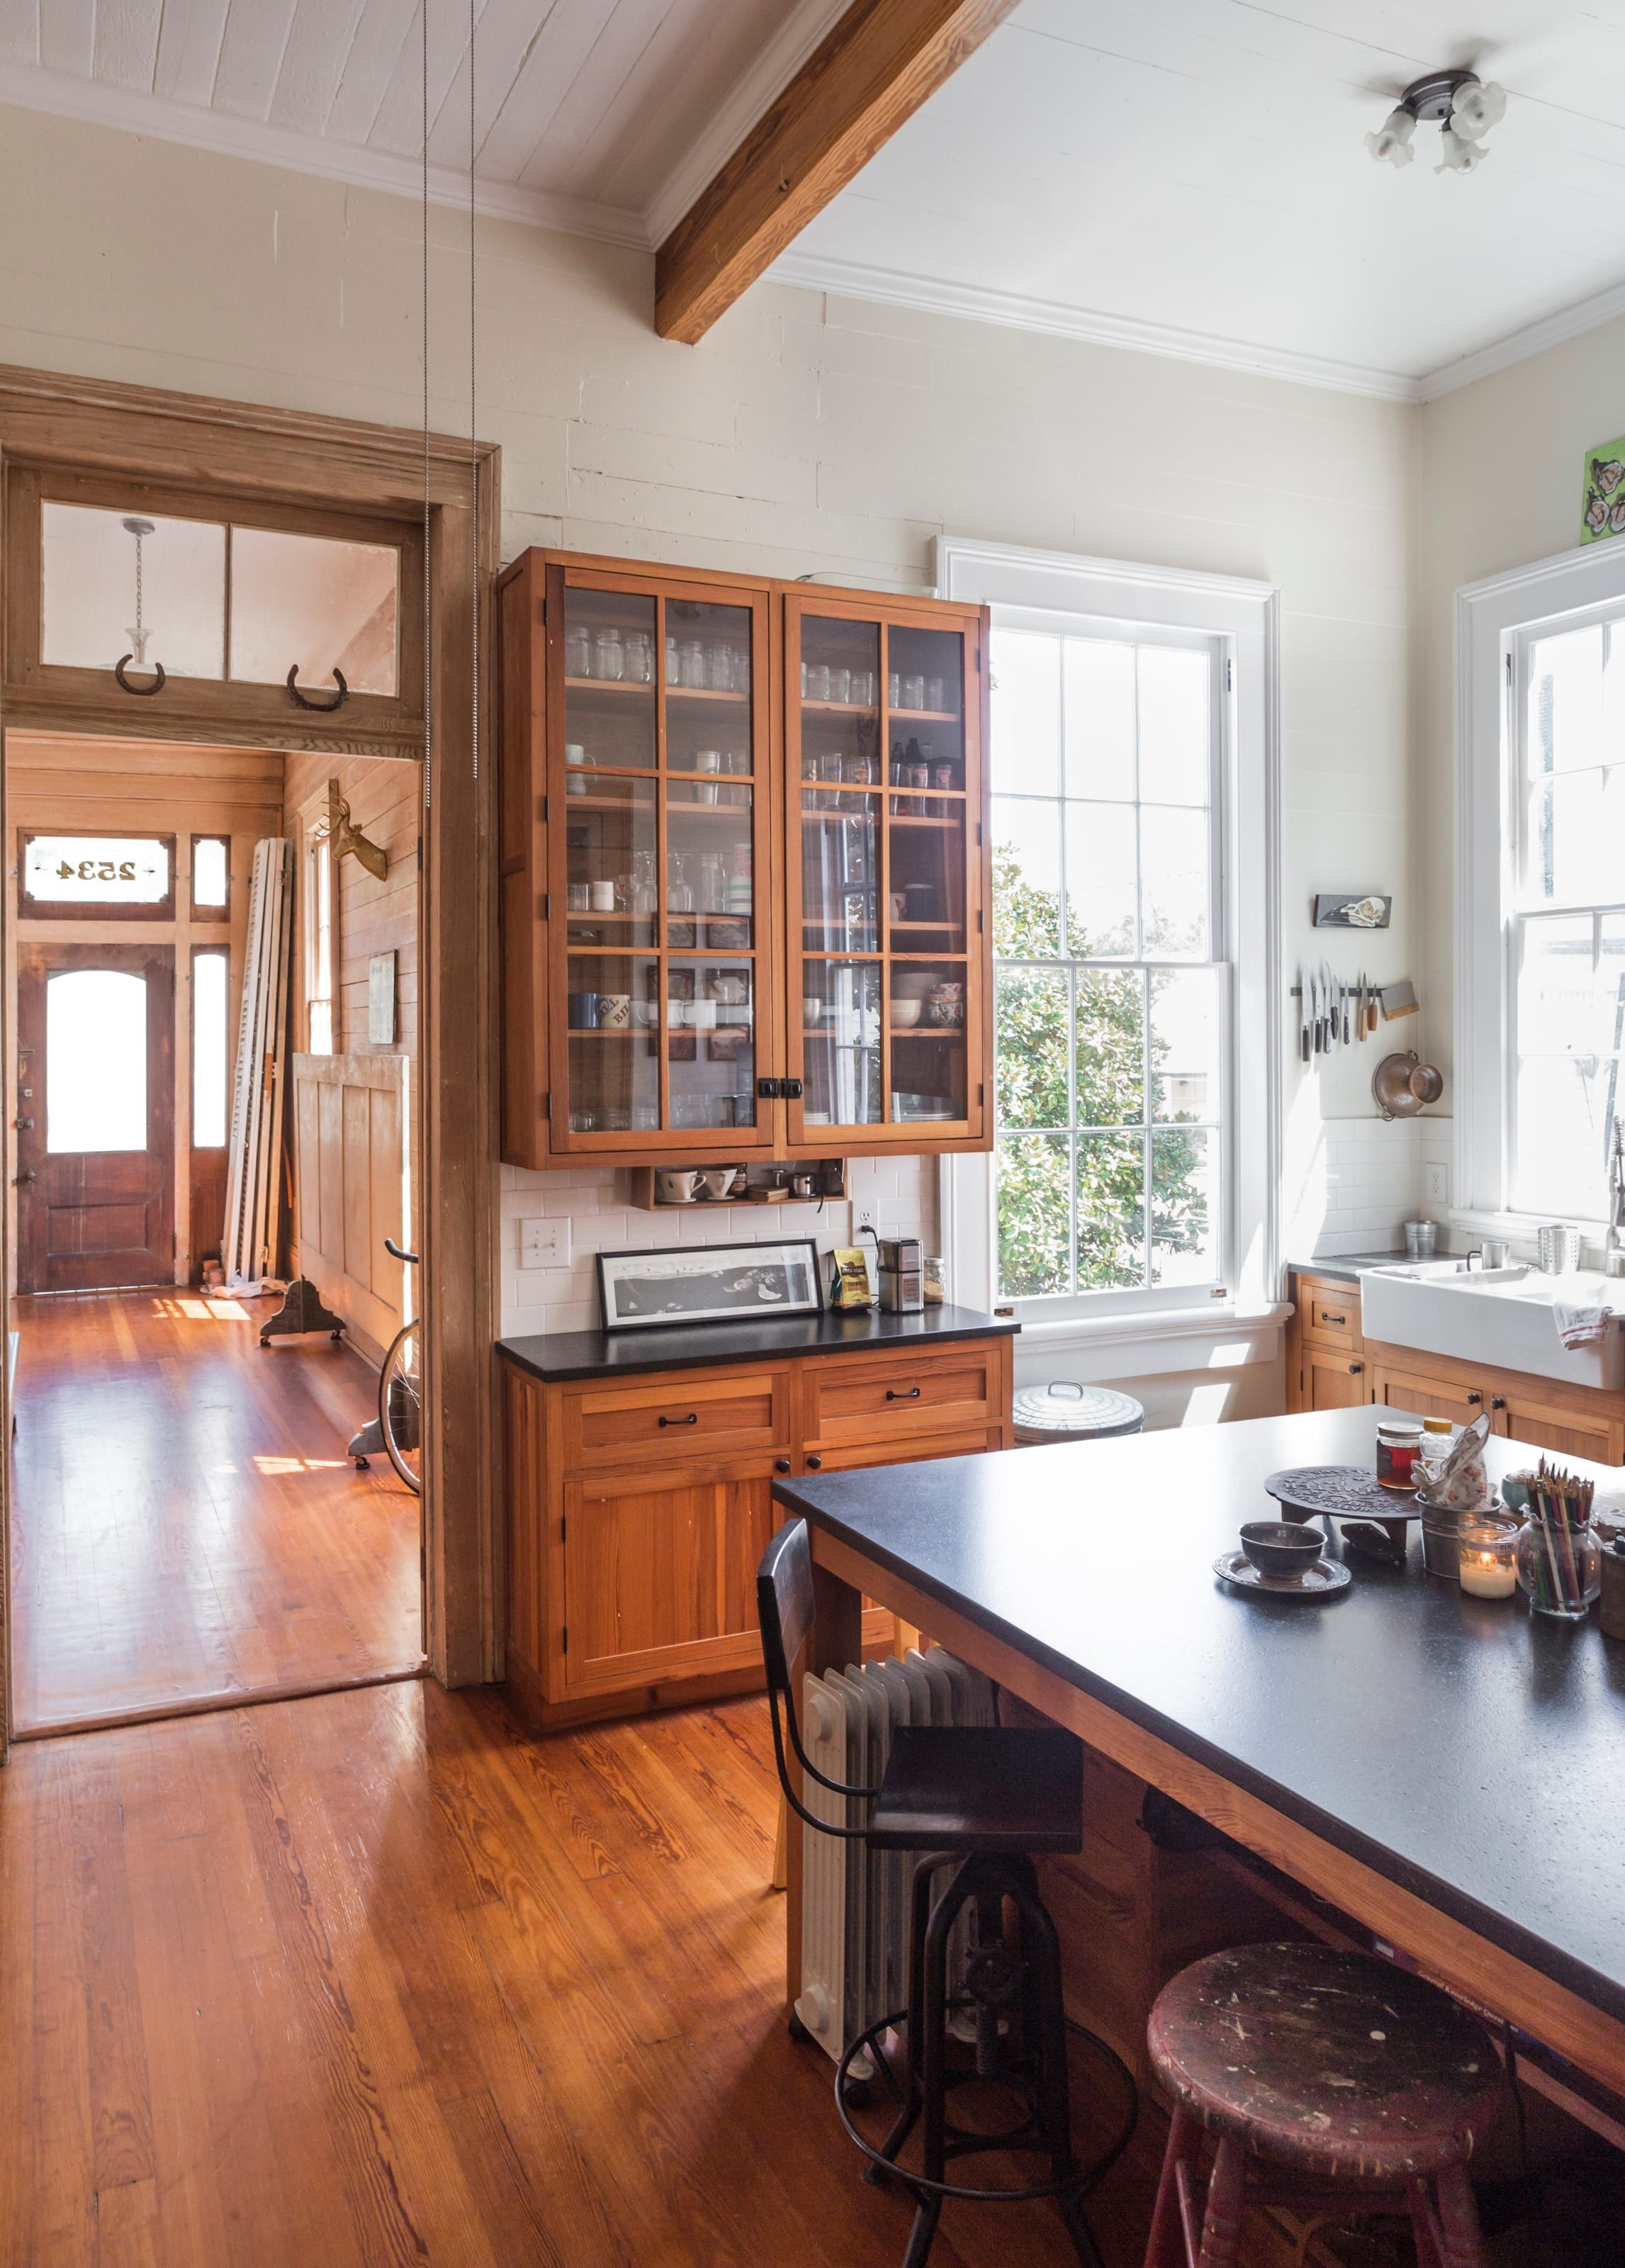 Decay On Display In A Grand Historic New Orleans Home New Orleans Homes Home Design My Kitchen